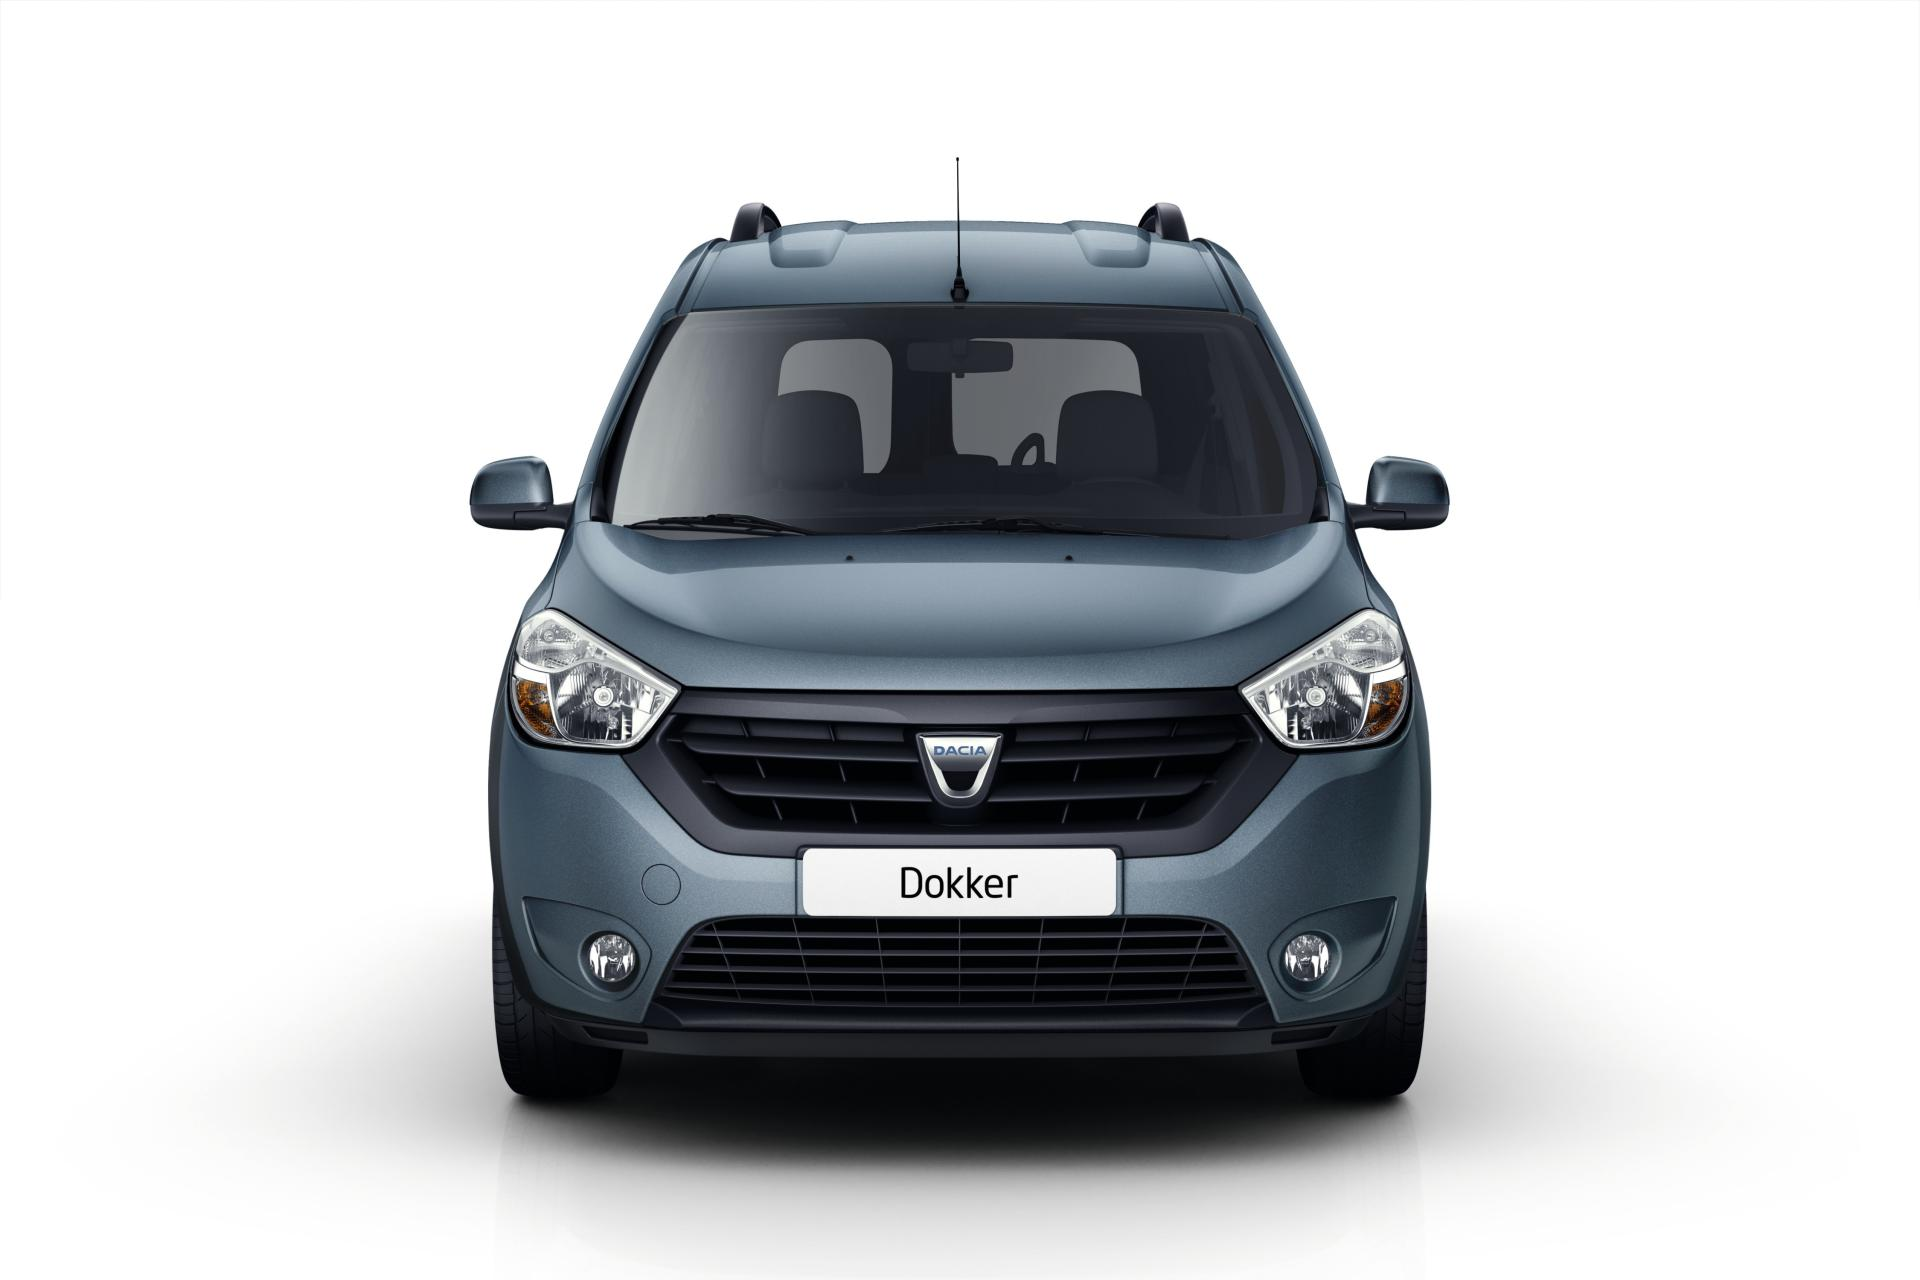 2013 dacia dokker technical and mechanical specifications. Black Bedroom Furniture Sets. Home Design Ideas